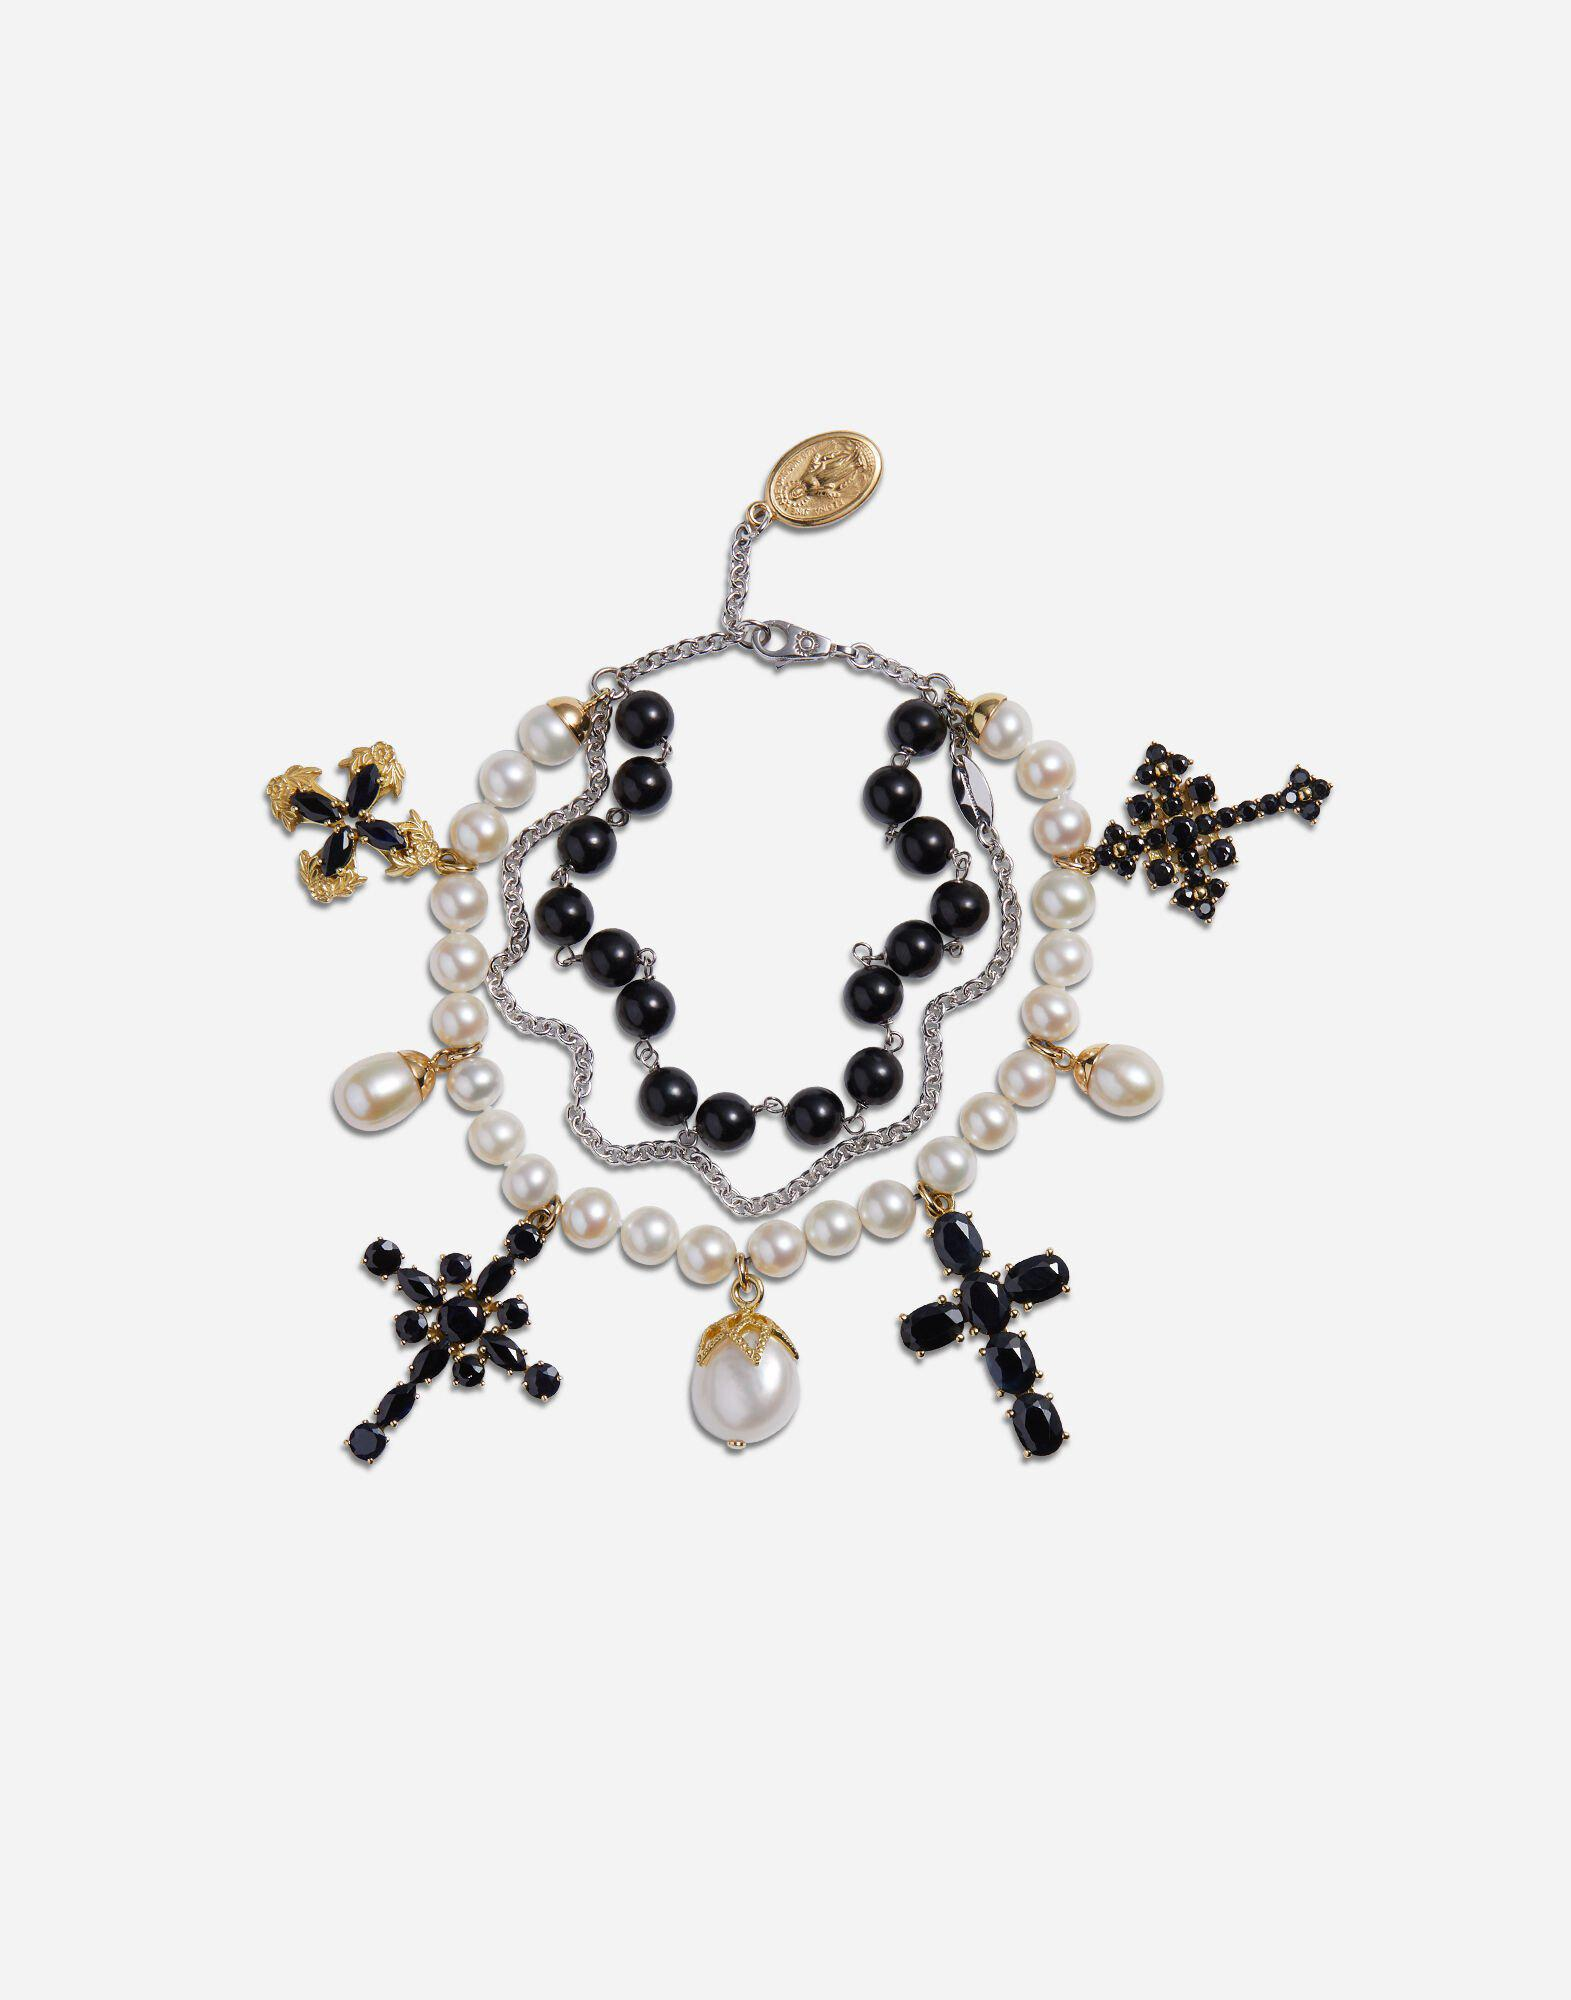 Yellow and white gold family bracelet with cblack sapphire, pearl and black jade beads